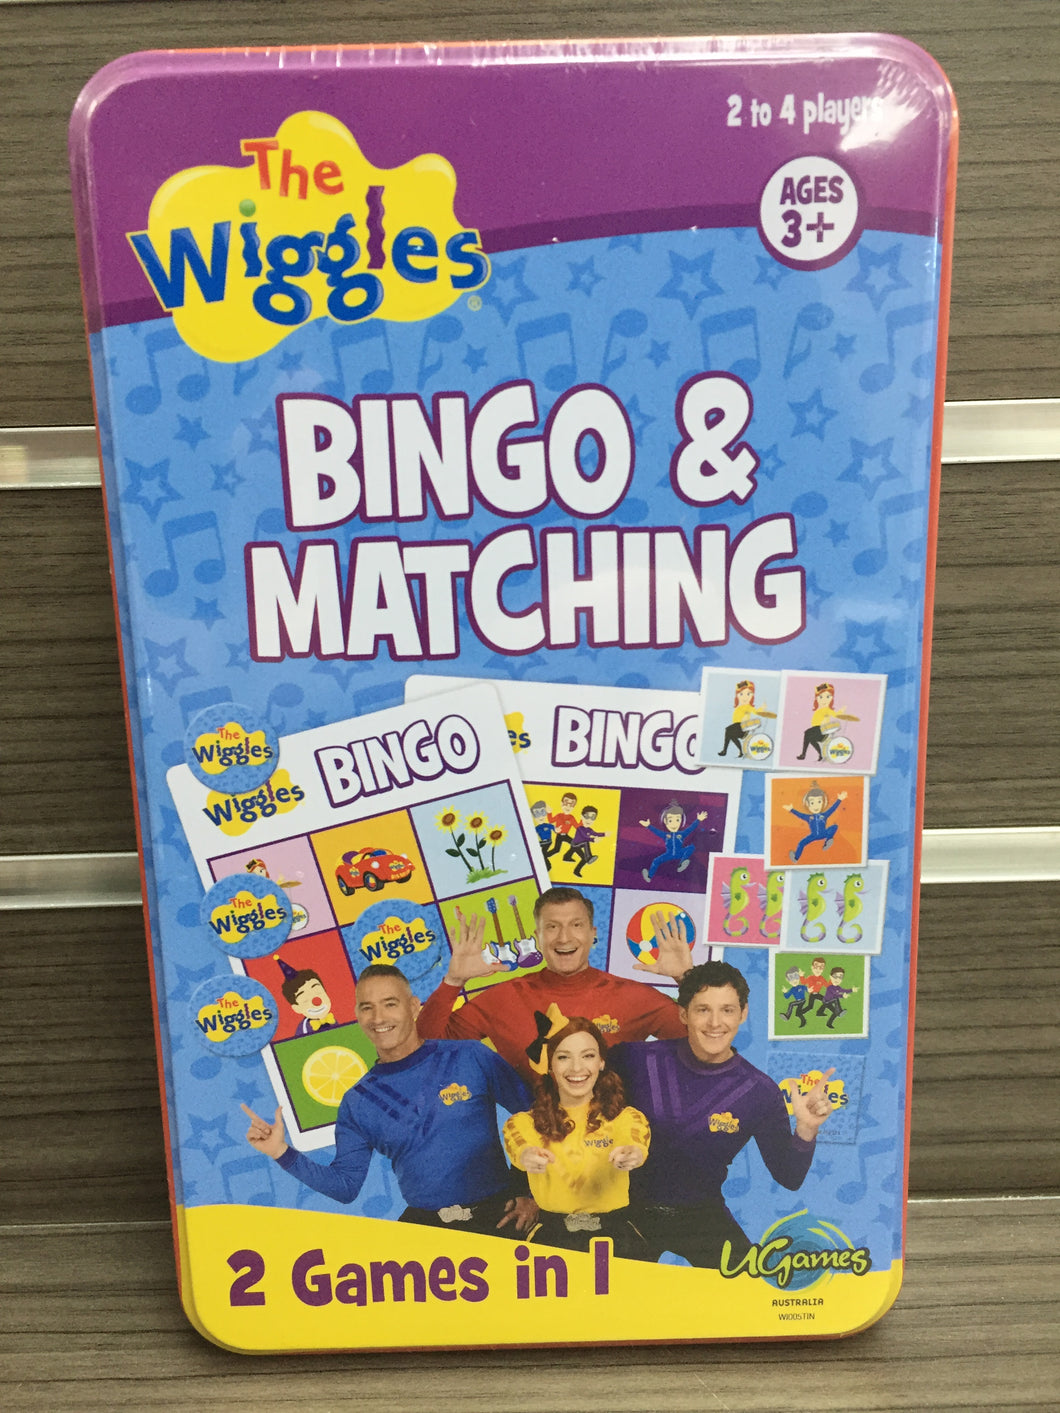 The Wiggles Bingo & Matching Tin